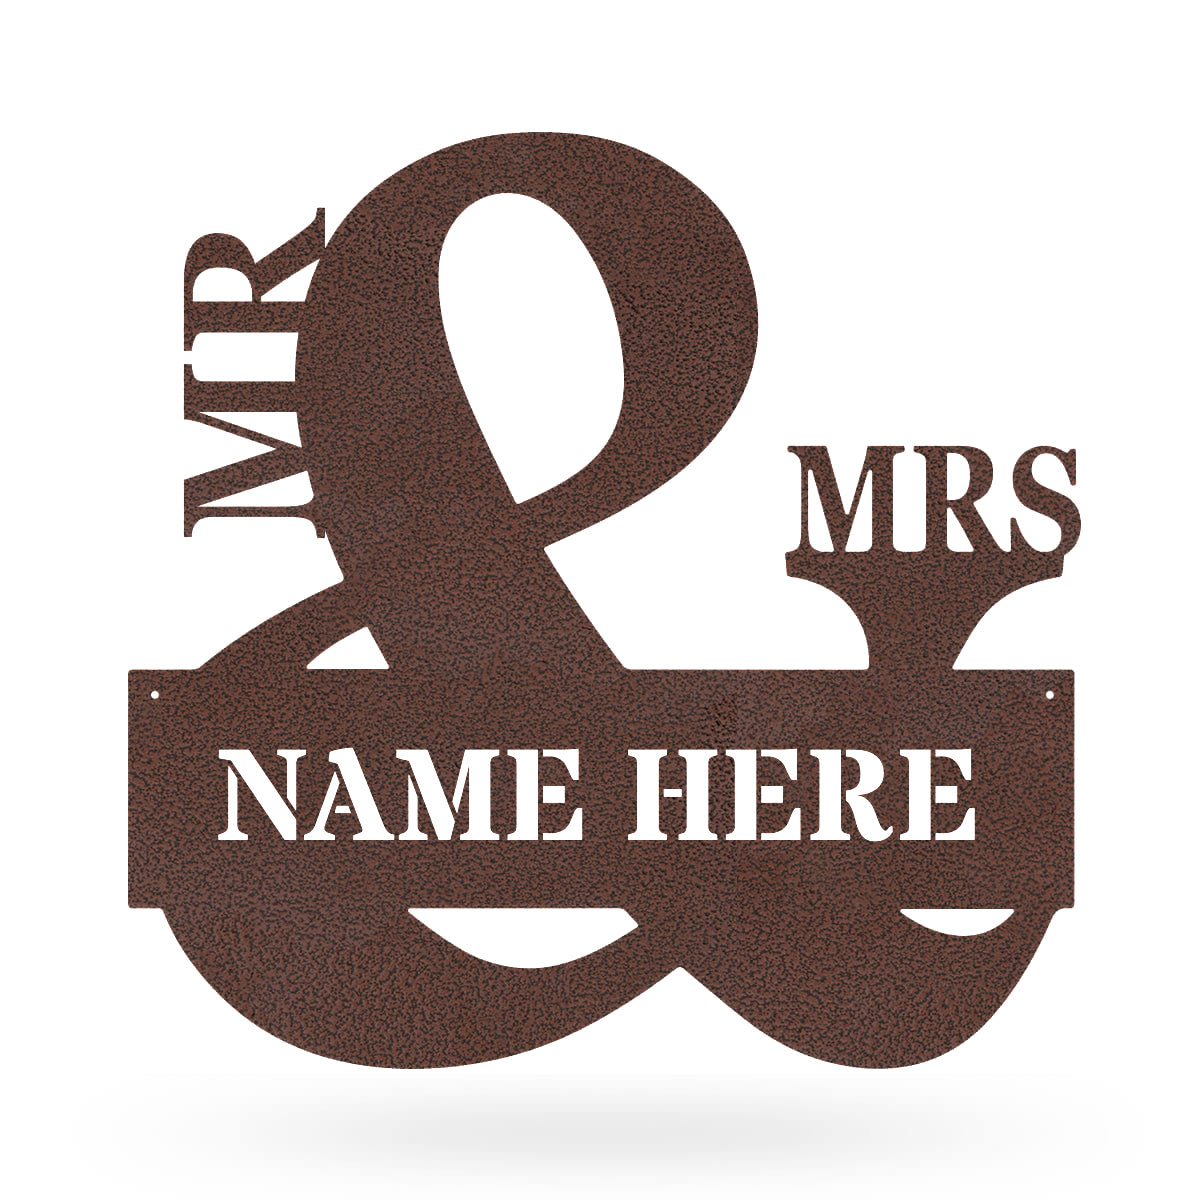 "Mr & Mrs Monogram 20""x20"" / Penny Vein - RealSteel Center"